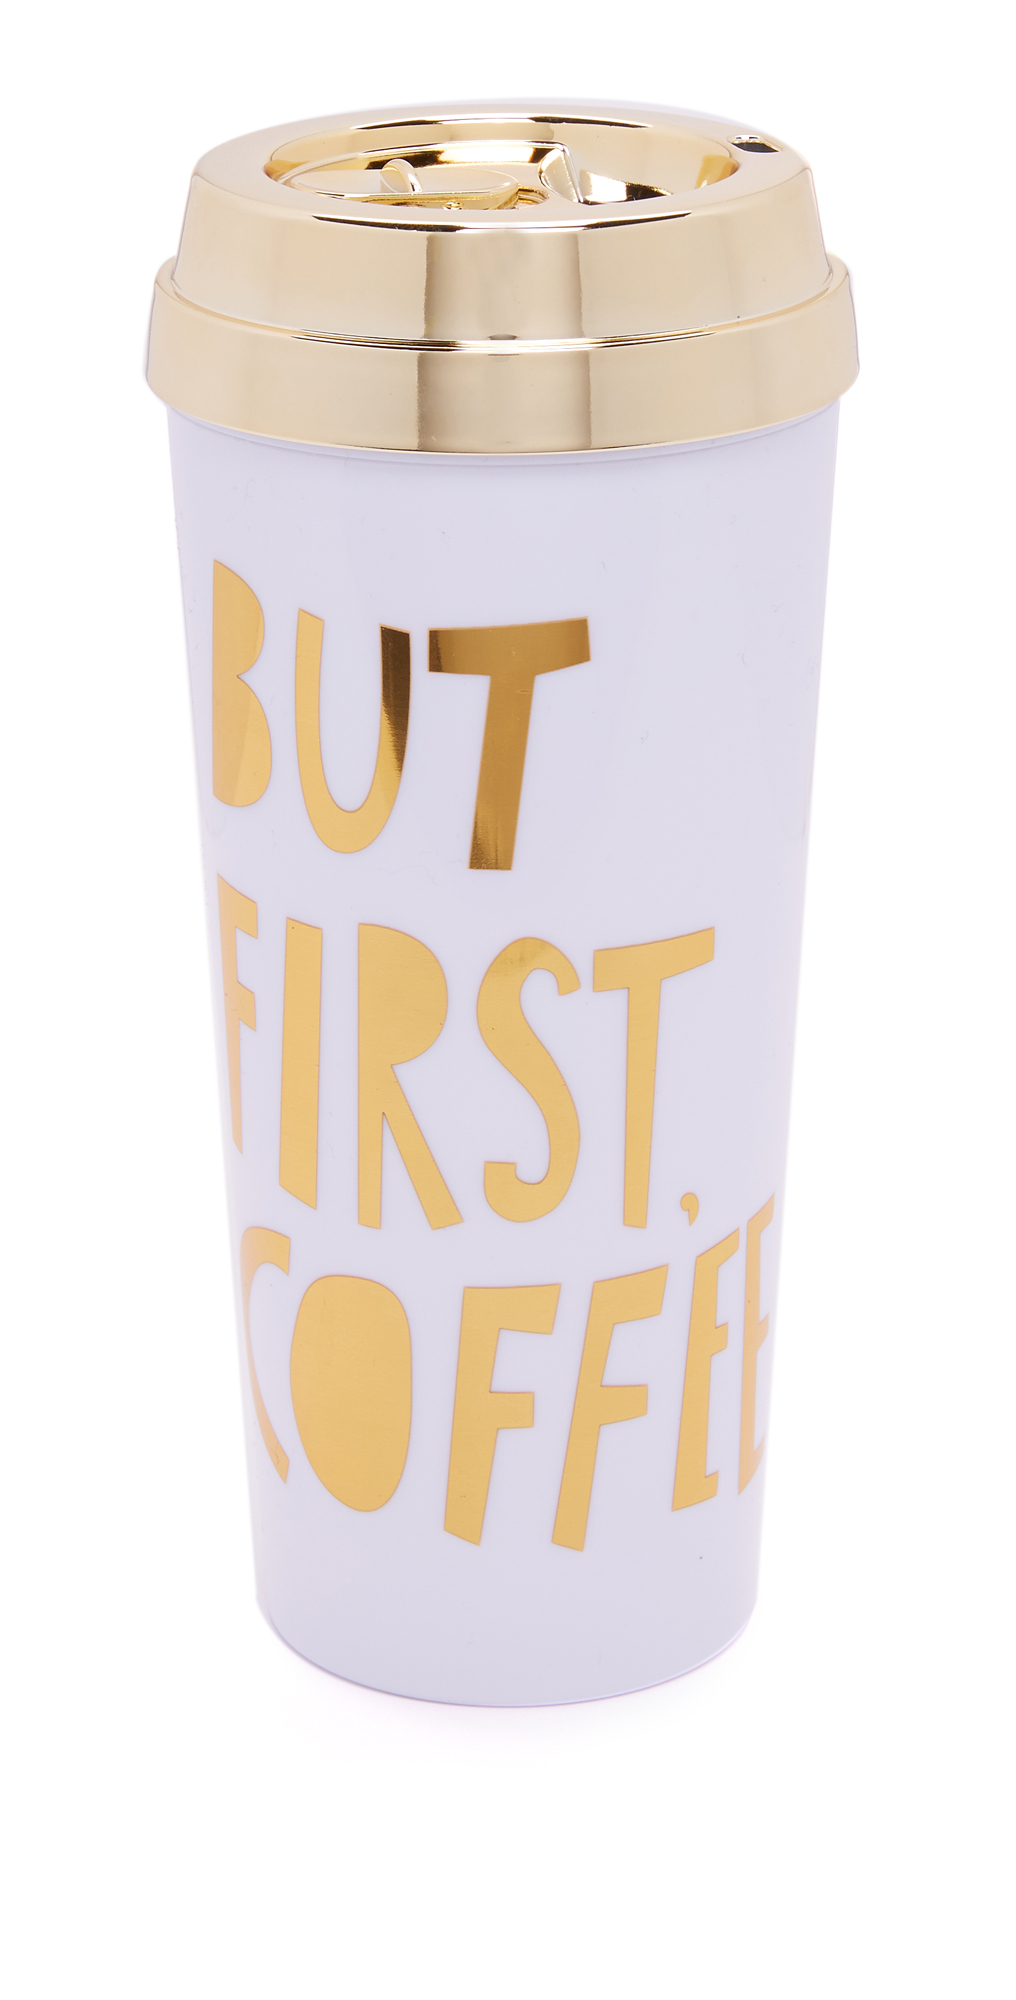 DELUXE HOT STUFF THERMAL MUG  BUT FIRST COFFEE  METALLIC GOLD